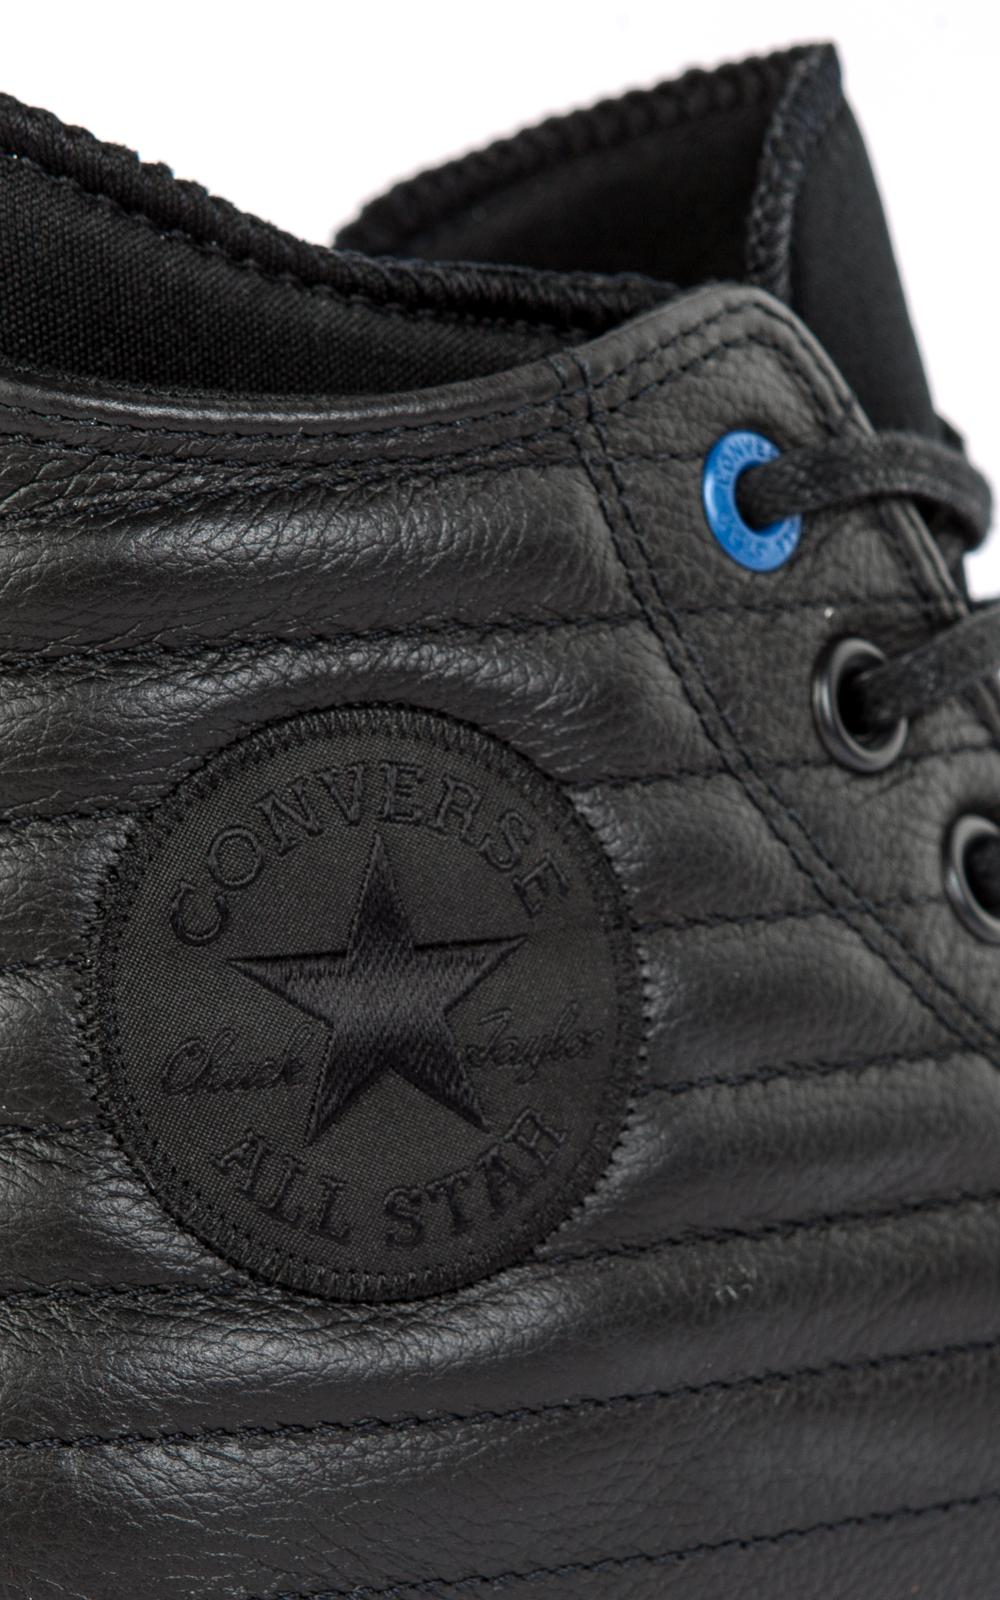 Converse All Star Chuck Waterproof Boot Quilted Leather Black in ... 0d57e2e90